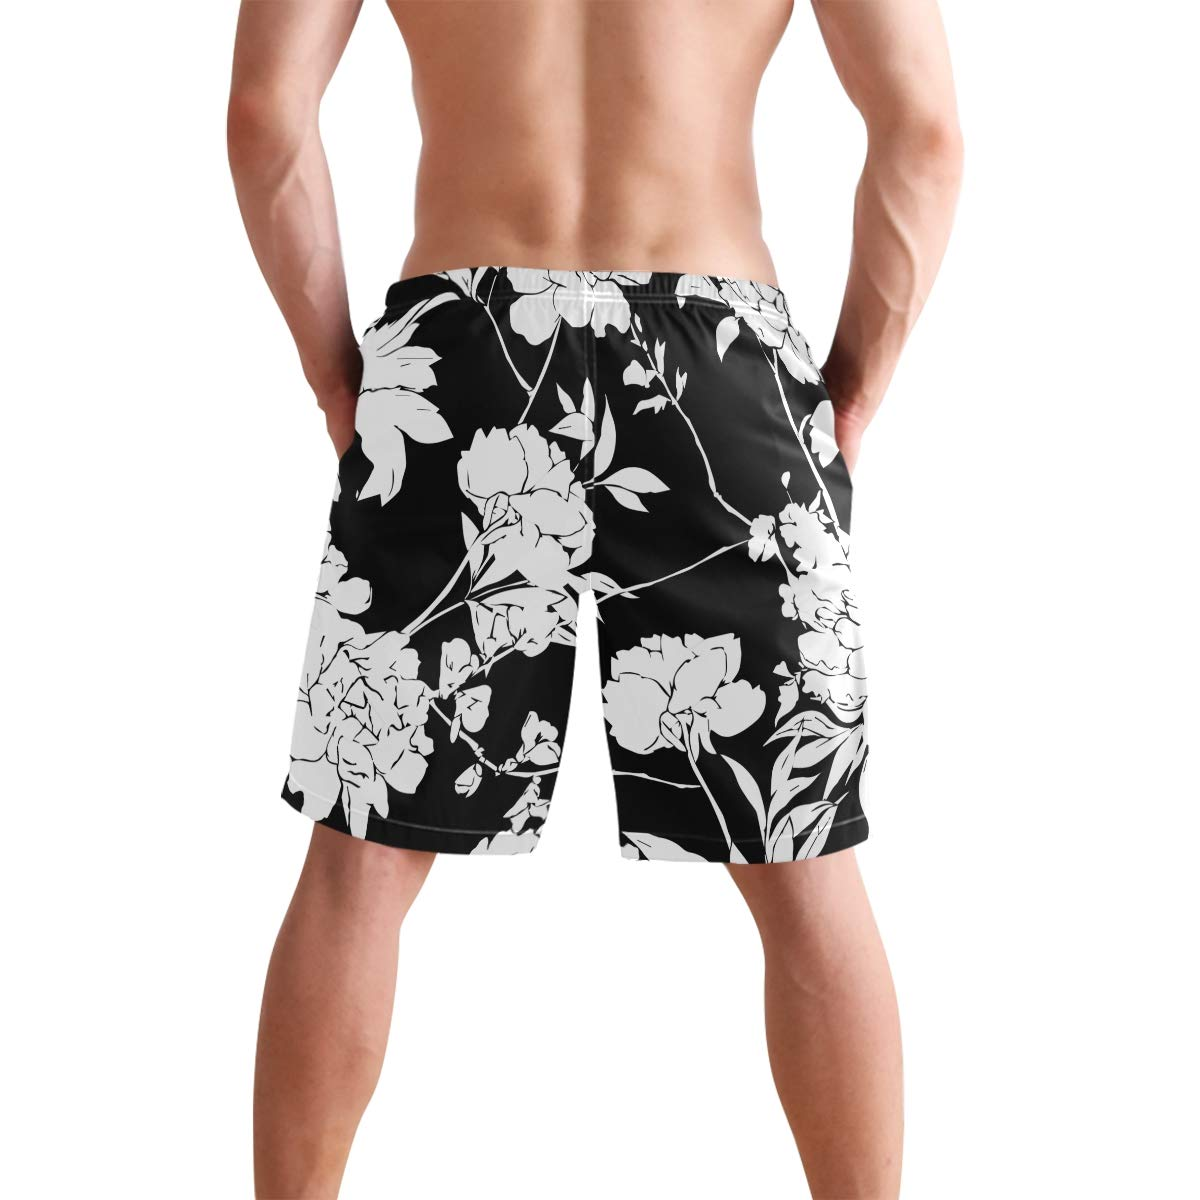 Humphy Albe Mens Blakc Peony Flowers with Leaves Quick Dry Bathing Suits Beach Board Shorts